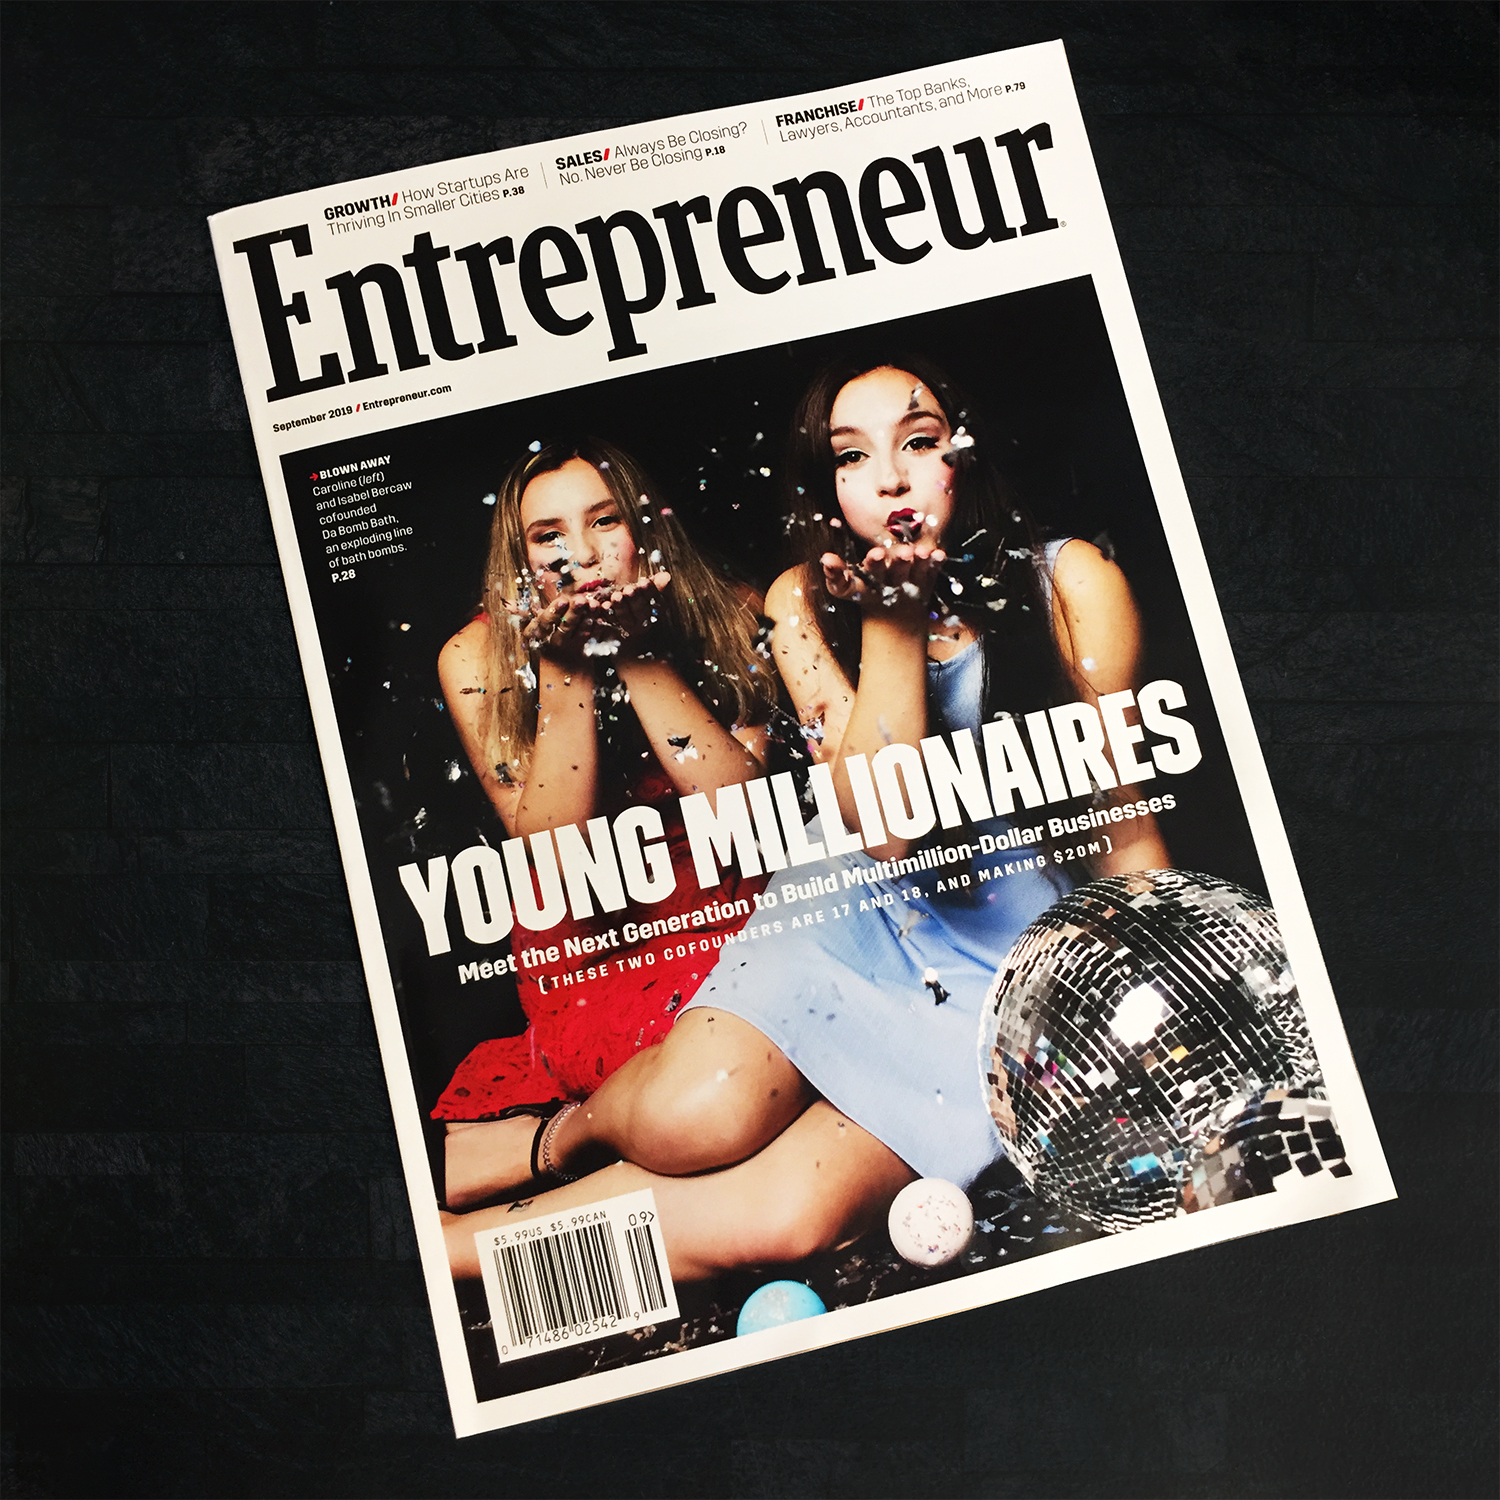 Picture of Isabel & Caroline on the front cover of the September edition of Entrepreneur Magazine.